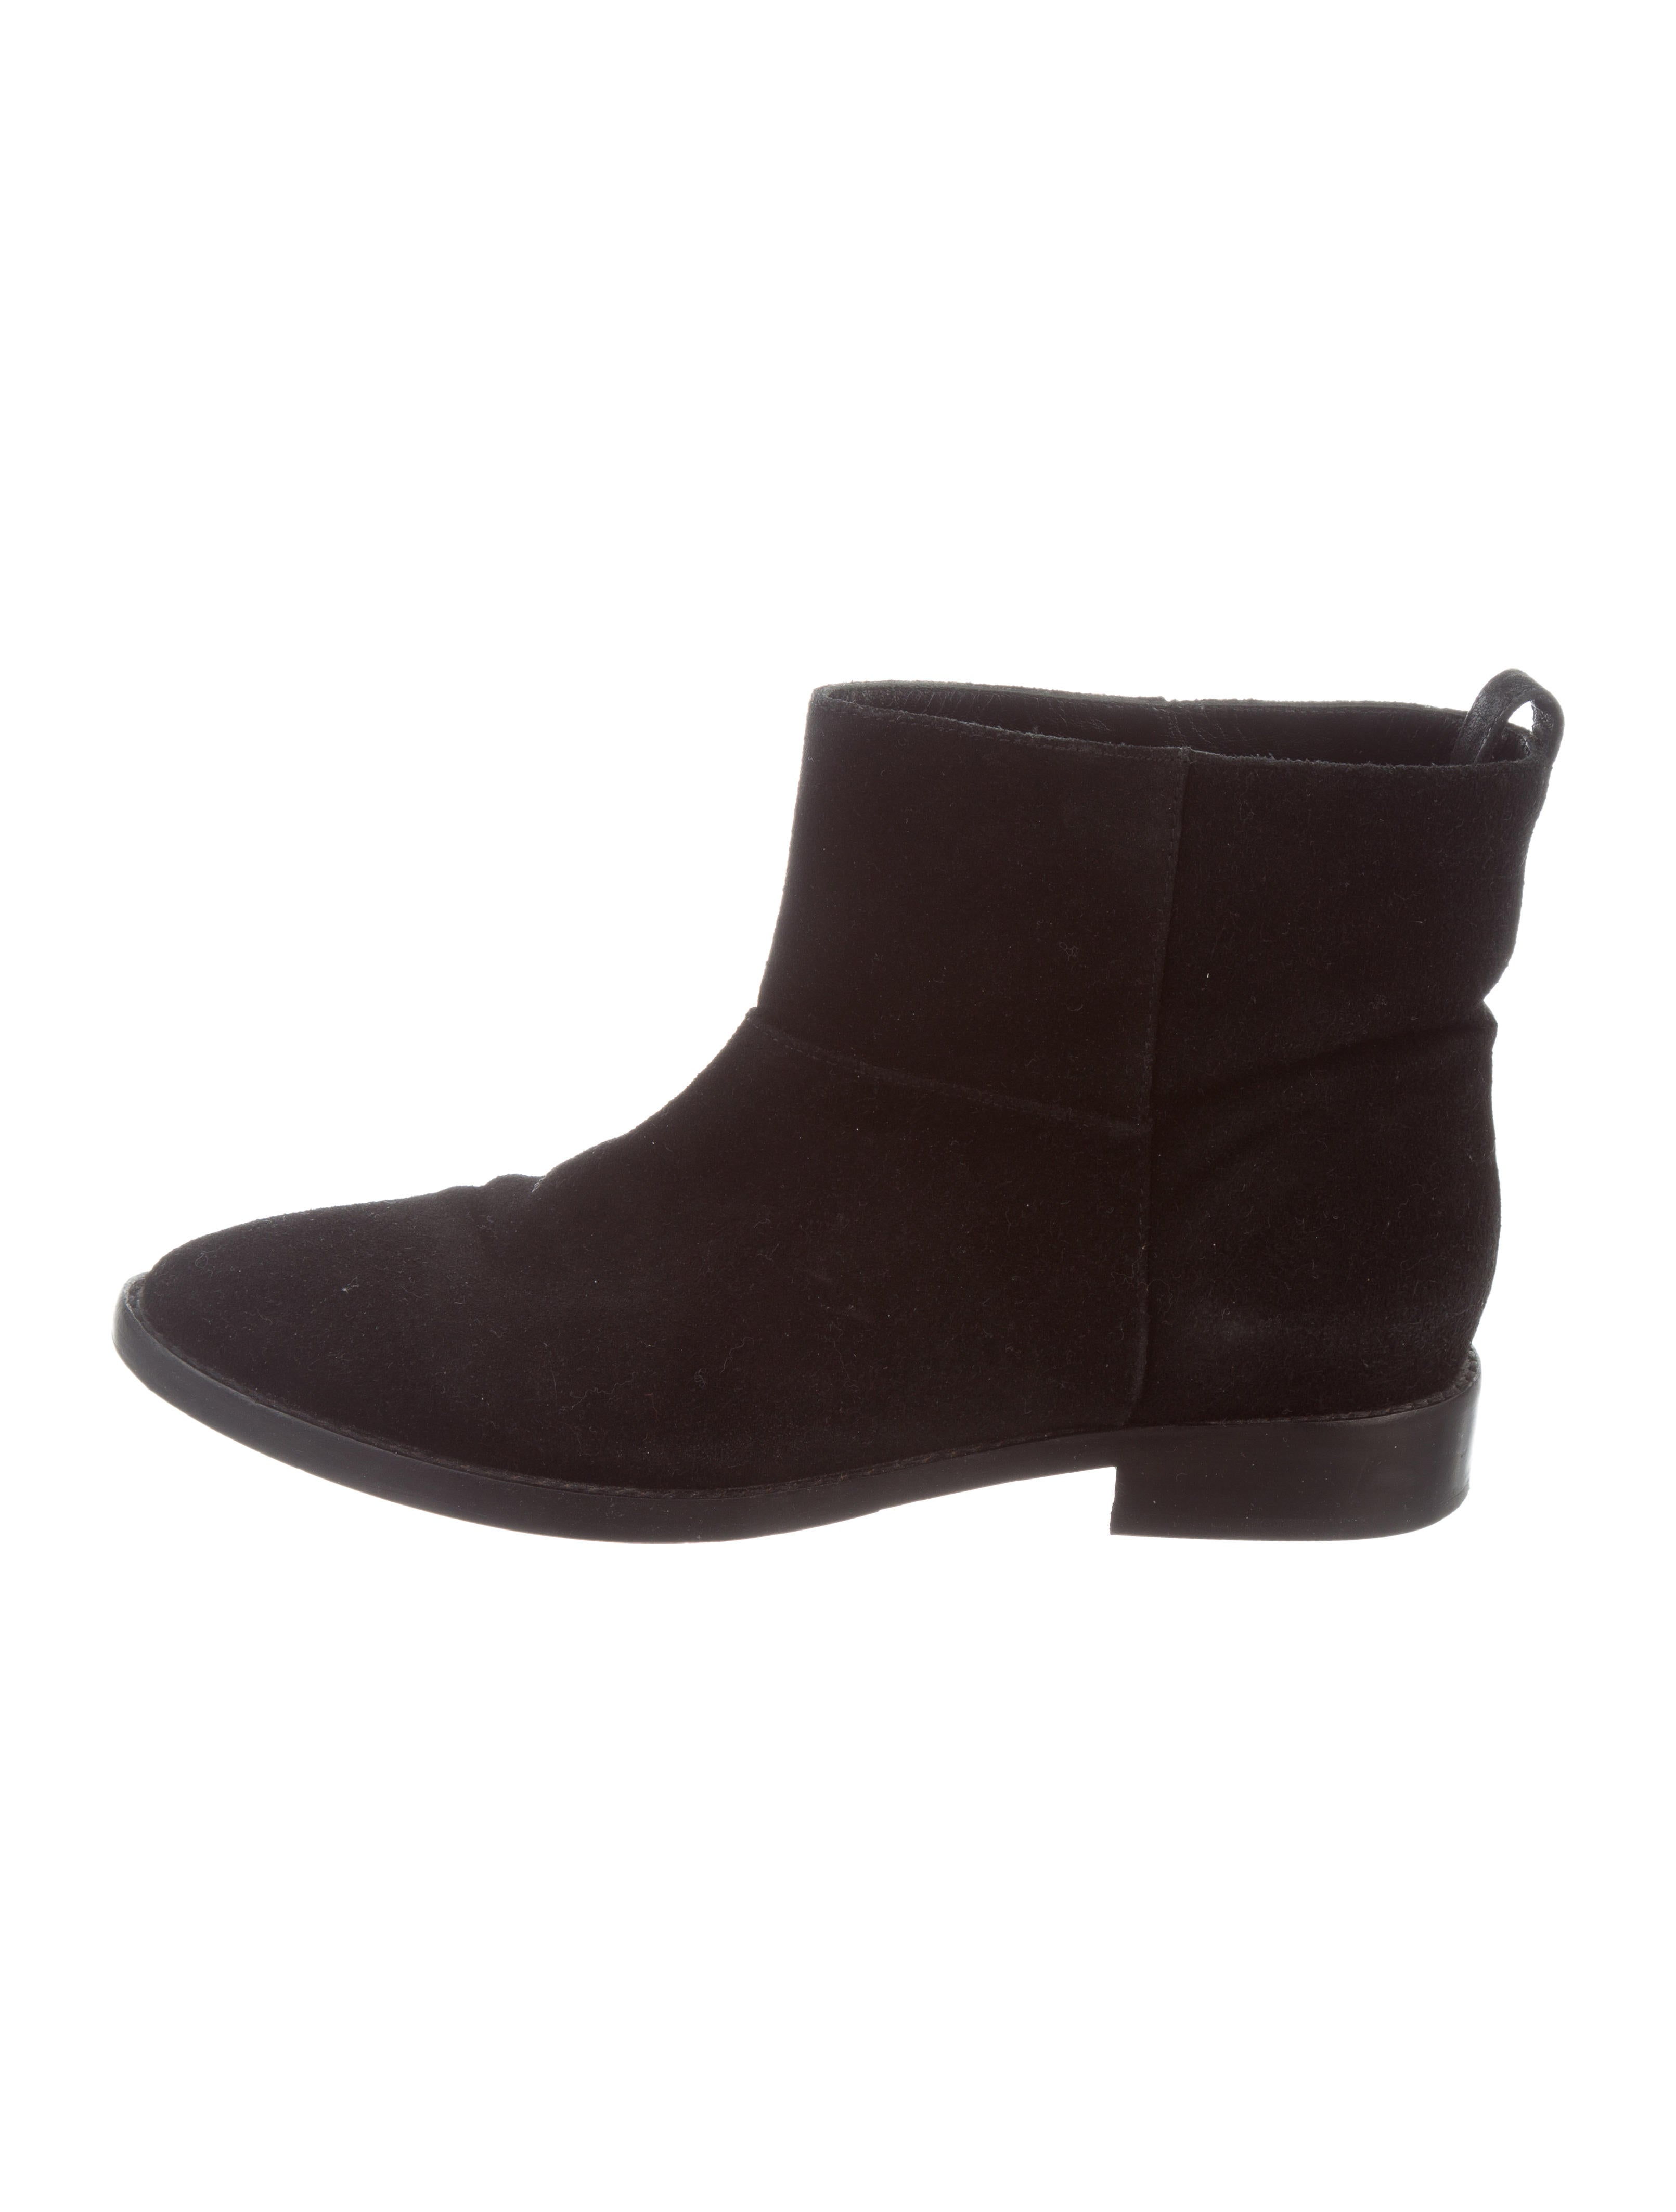 great deals for sale Theyskens' Theory Suede Pointed-Toe Boots discount Inexpensive amazon footaction buy cheap outlet store pnjy4Jq